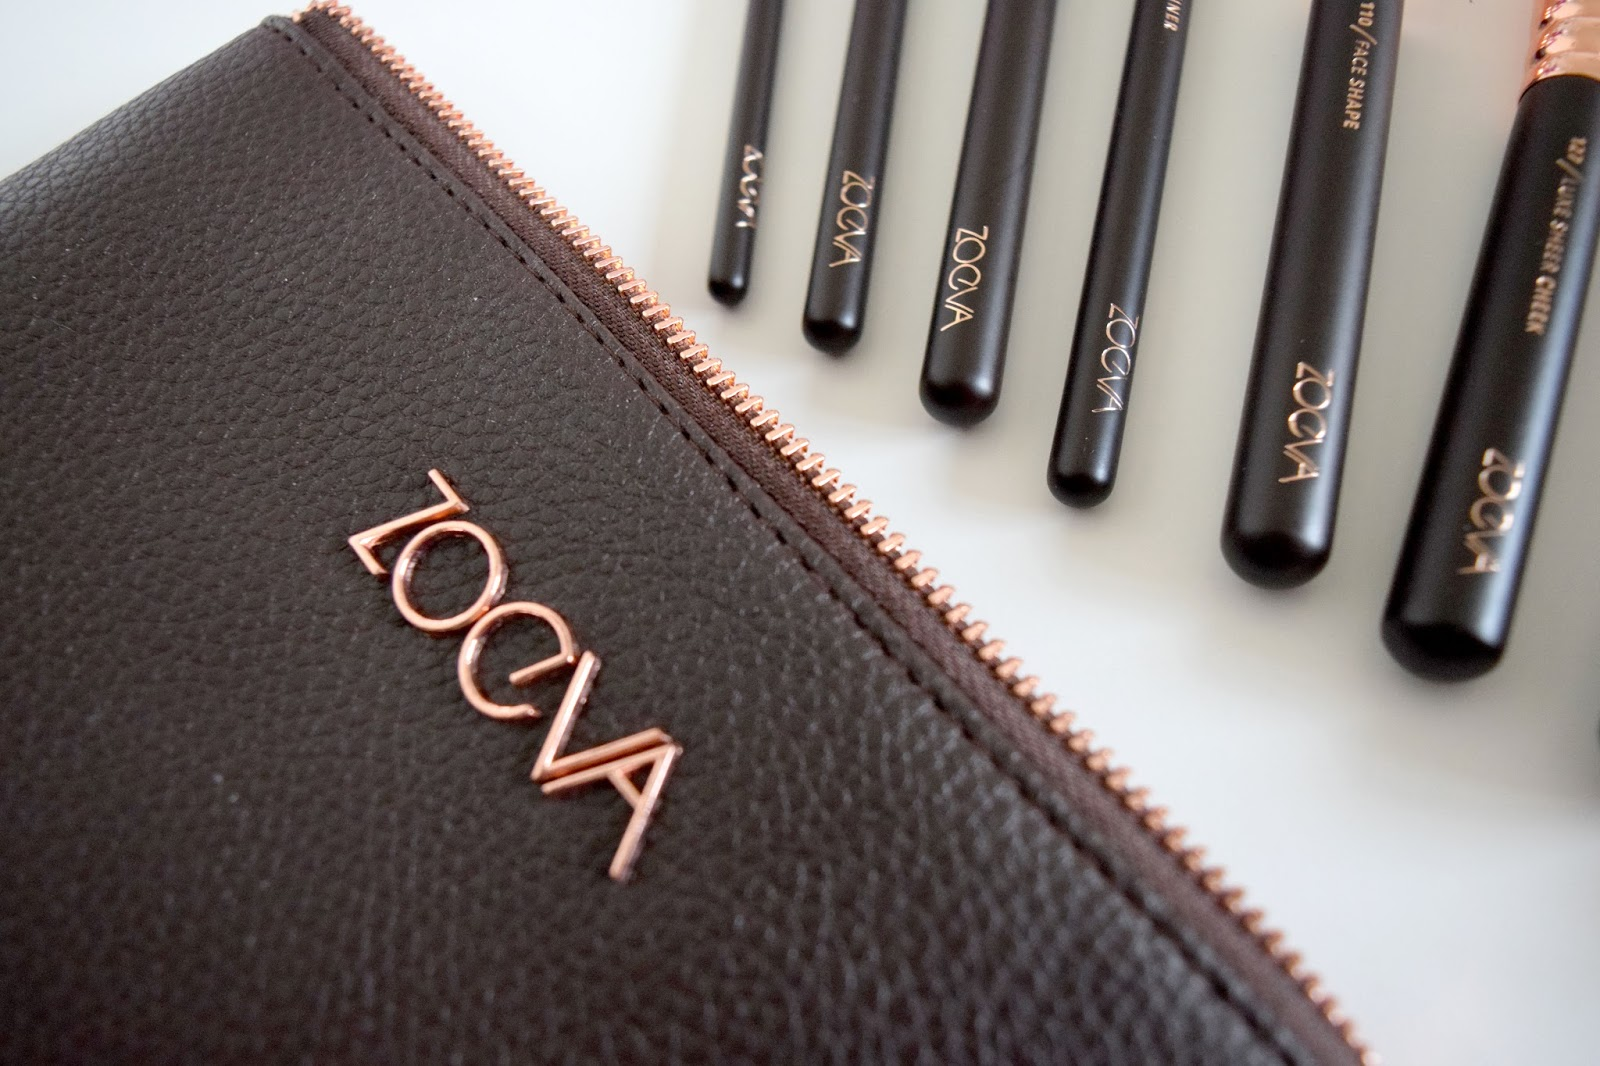 Zoeva Rose Gold Brush Set